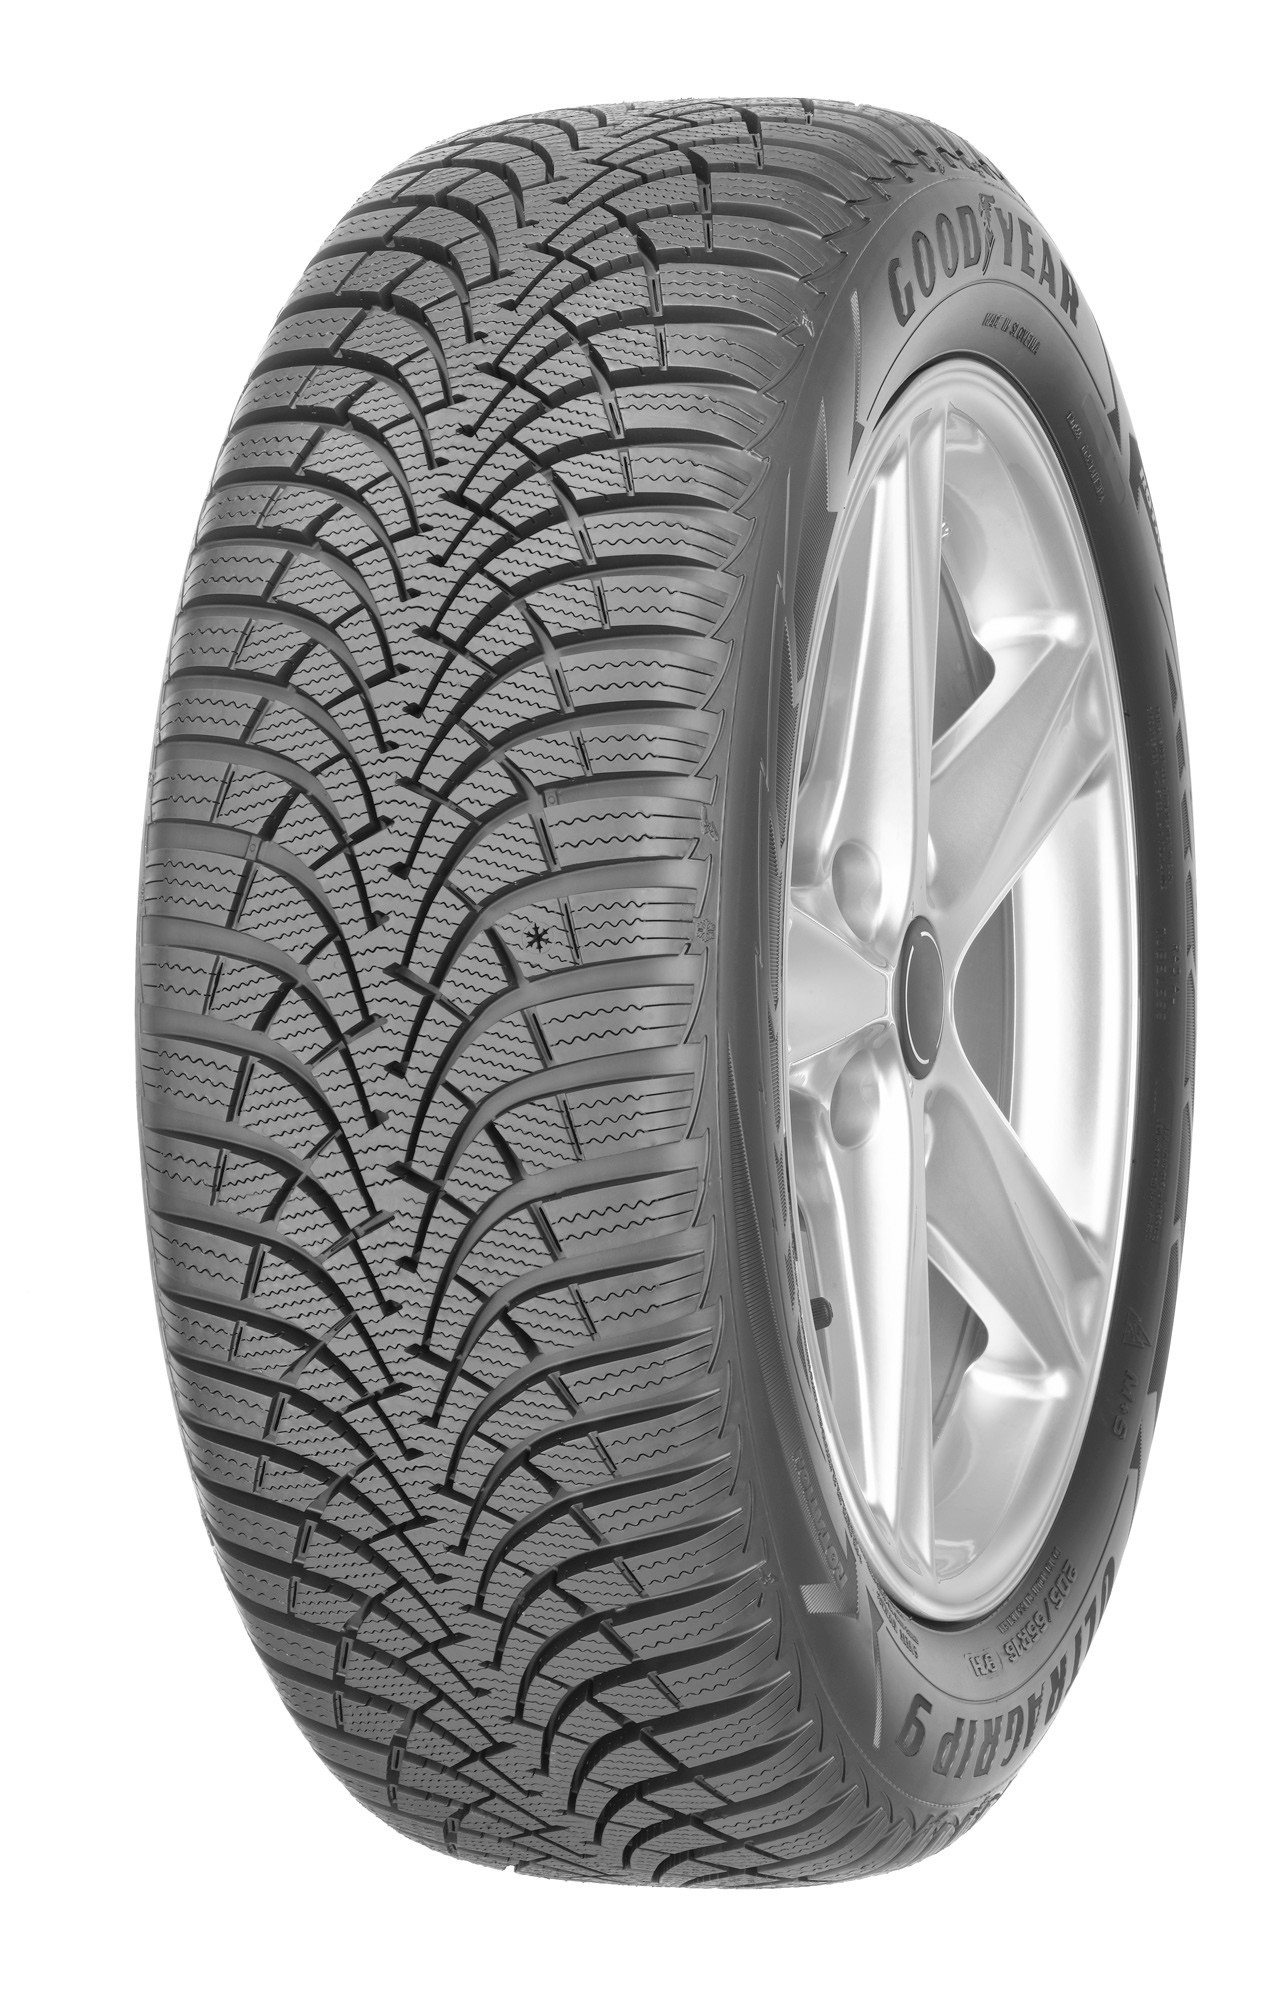 Anvelopa Iarna 195/55R16 87H Goodyear Ultragrip 9 Ms